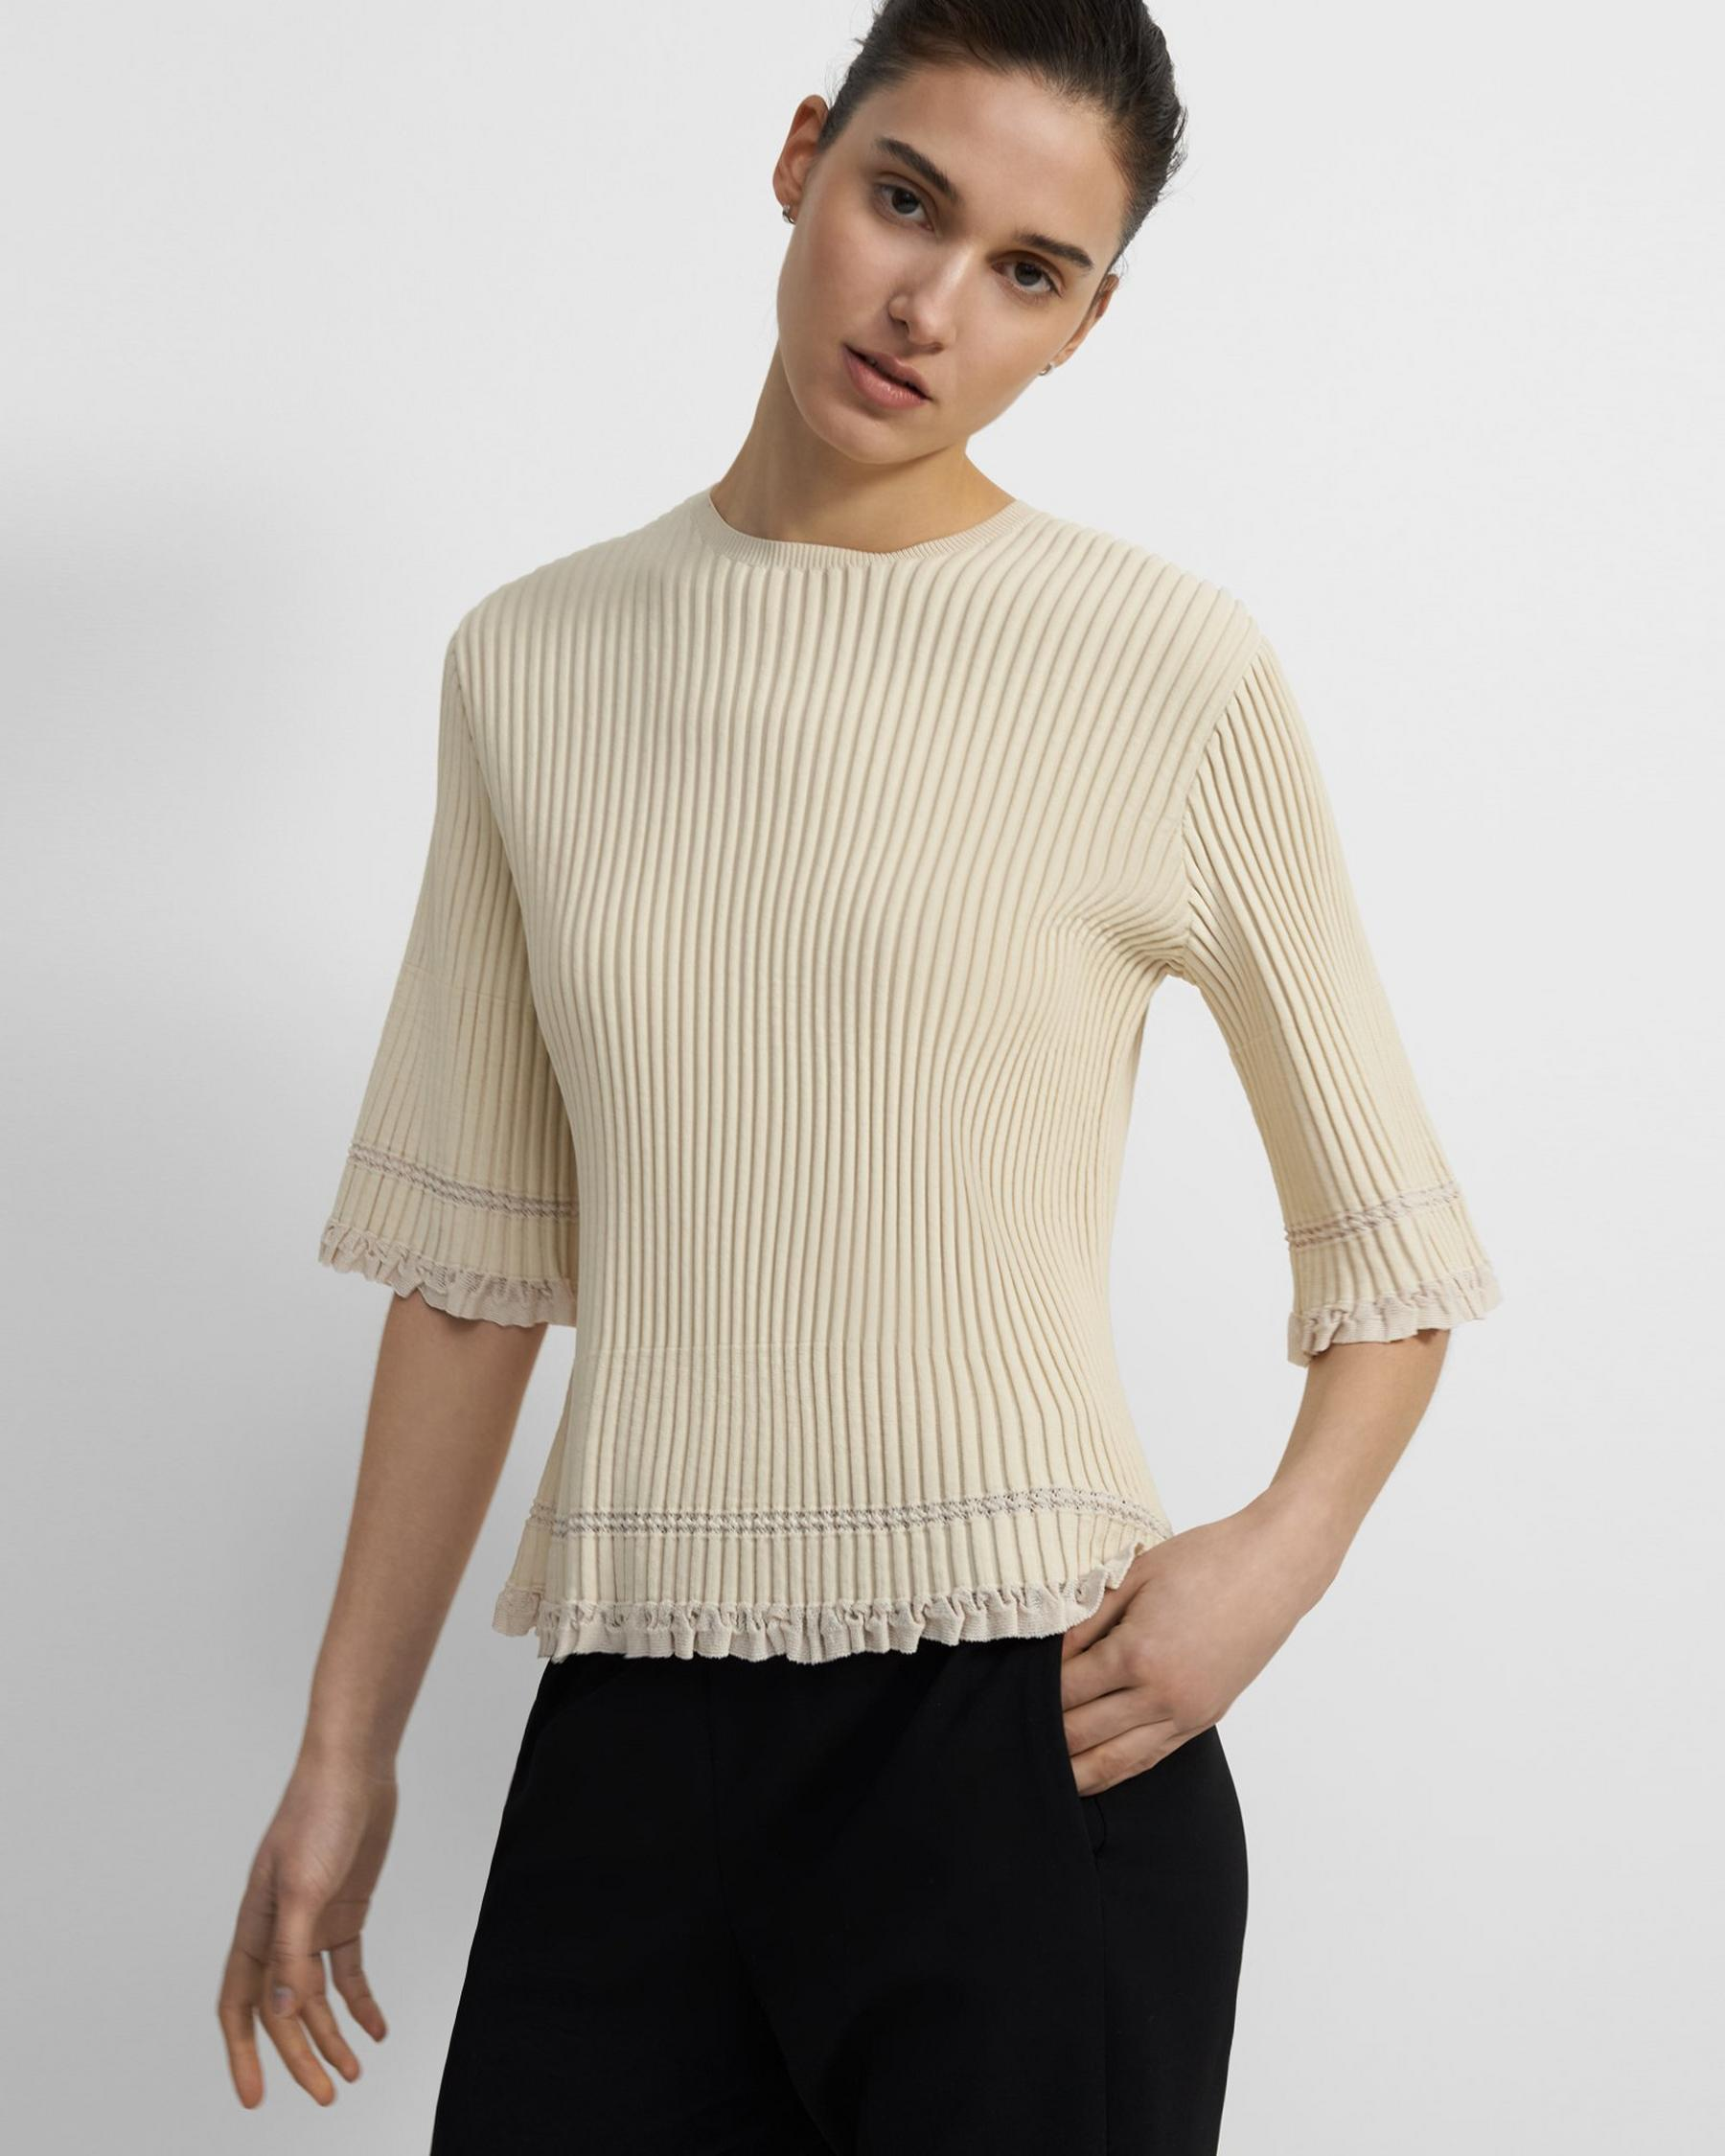 Ribbed T-Shirt in Eco Knit